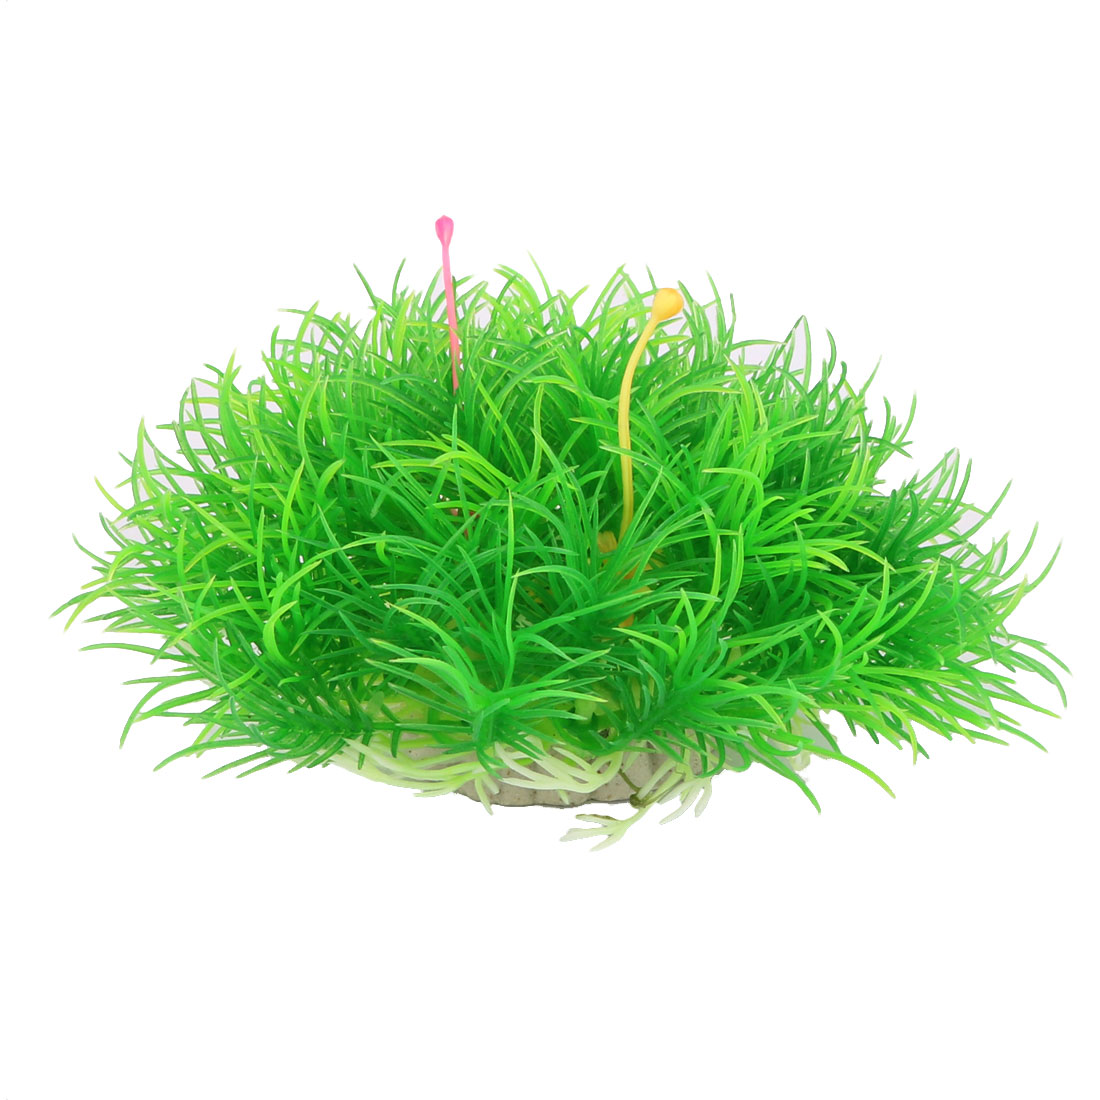 Aquarium Fish Tank Artificial Underwater Grass Plant Landscape Decoration Green